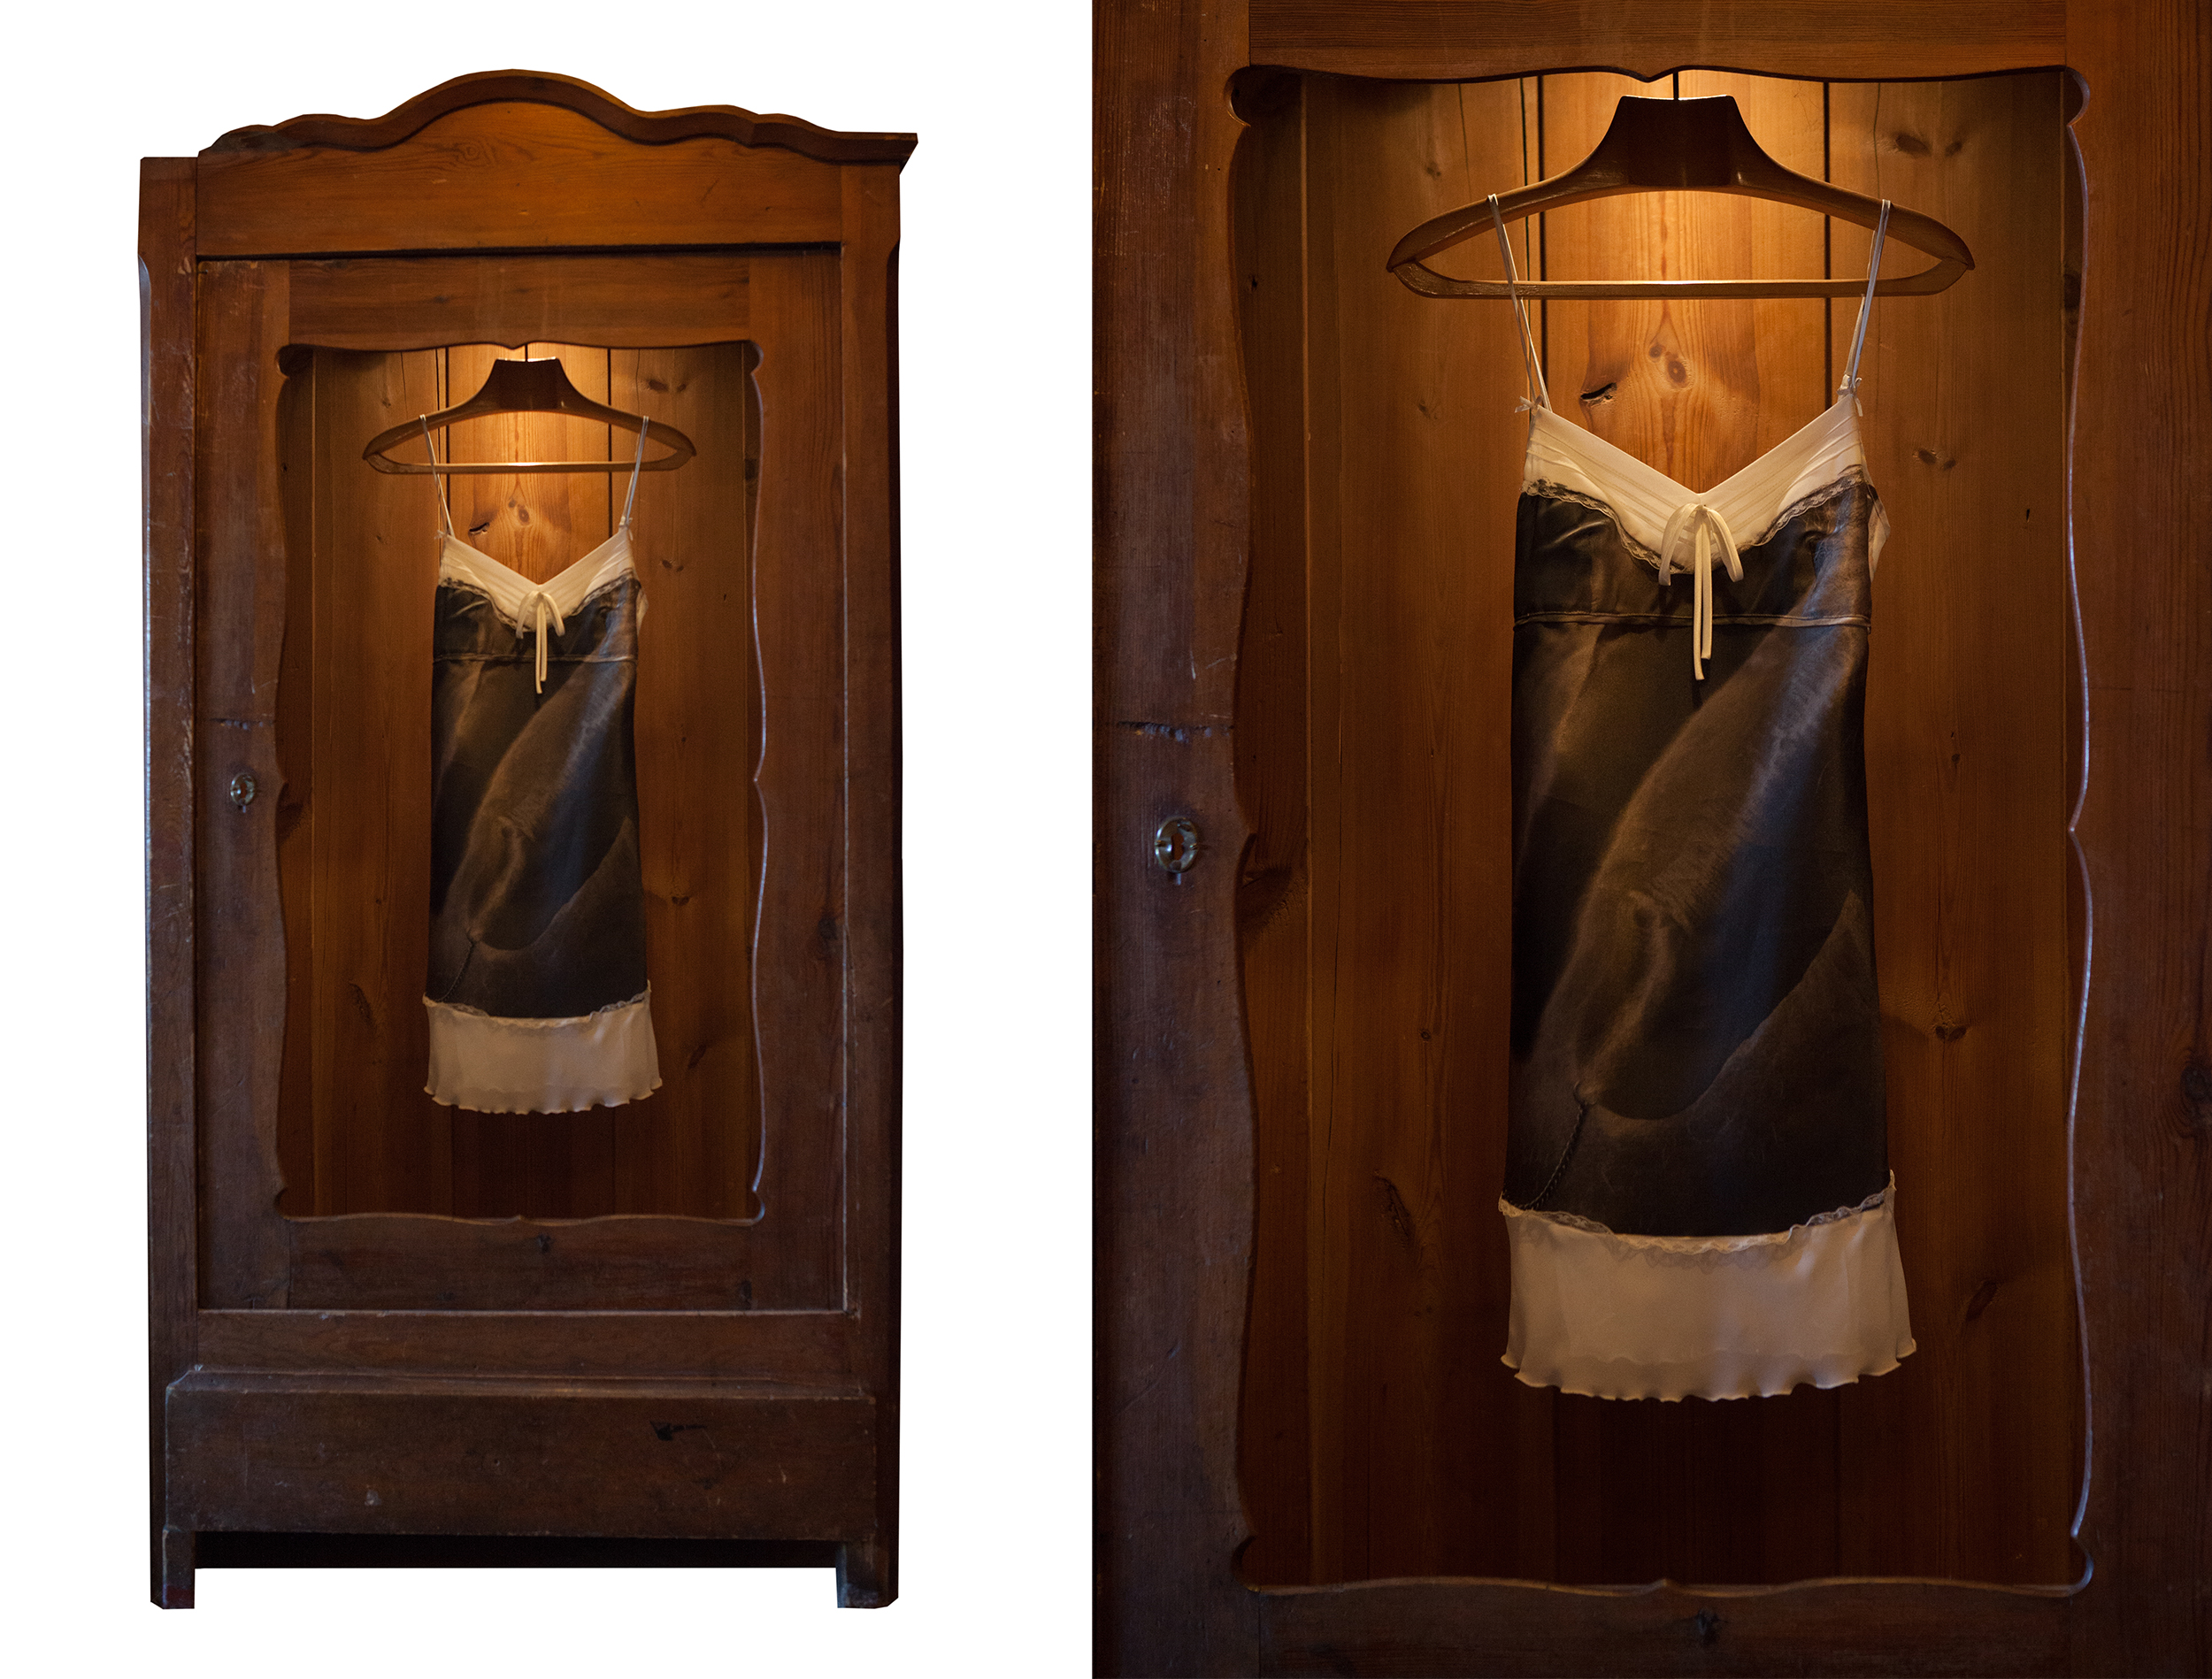 """- Freudian slipSize: 180x90x44 cm.An installation of a silk slip covered with an imprinted masculine erotic close up, hanging in a vintage wardrobe. An artwork playing with an expression """"Freudian slip"""" explaining en error in speech that Freud believed came from an unconscious mind and repressed desires. A slip naturally having second more casual meaning-a part of woman's underwear."""